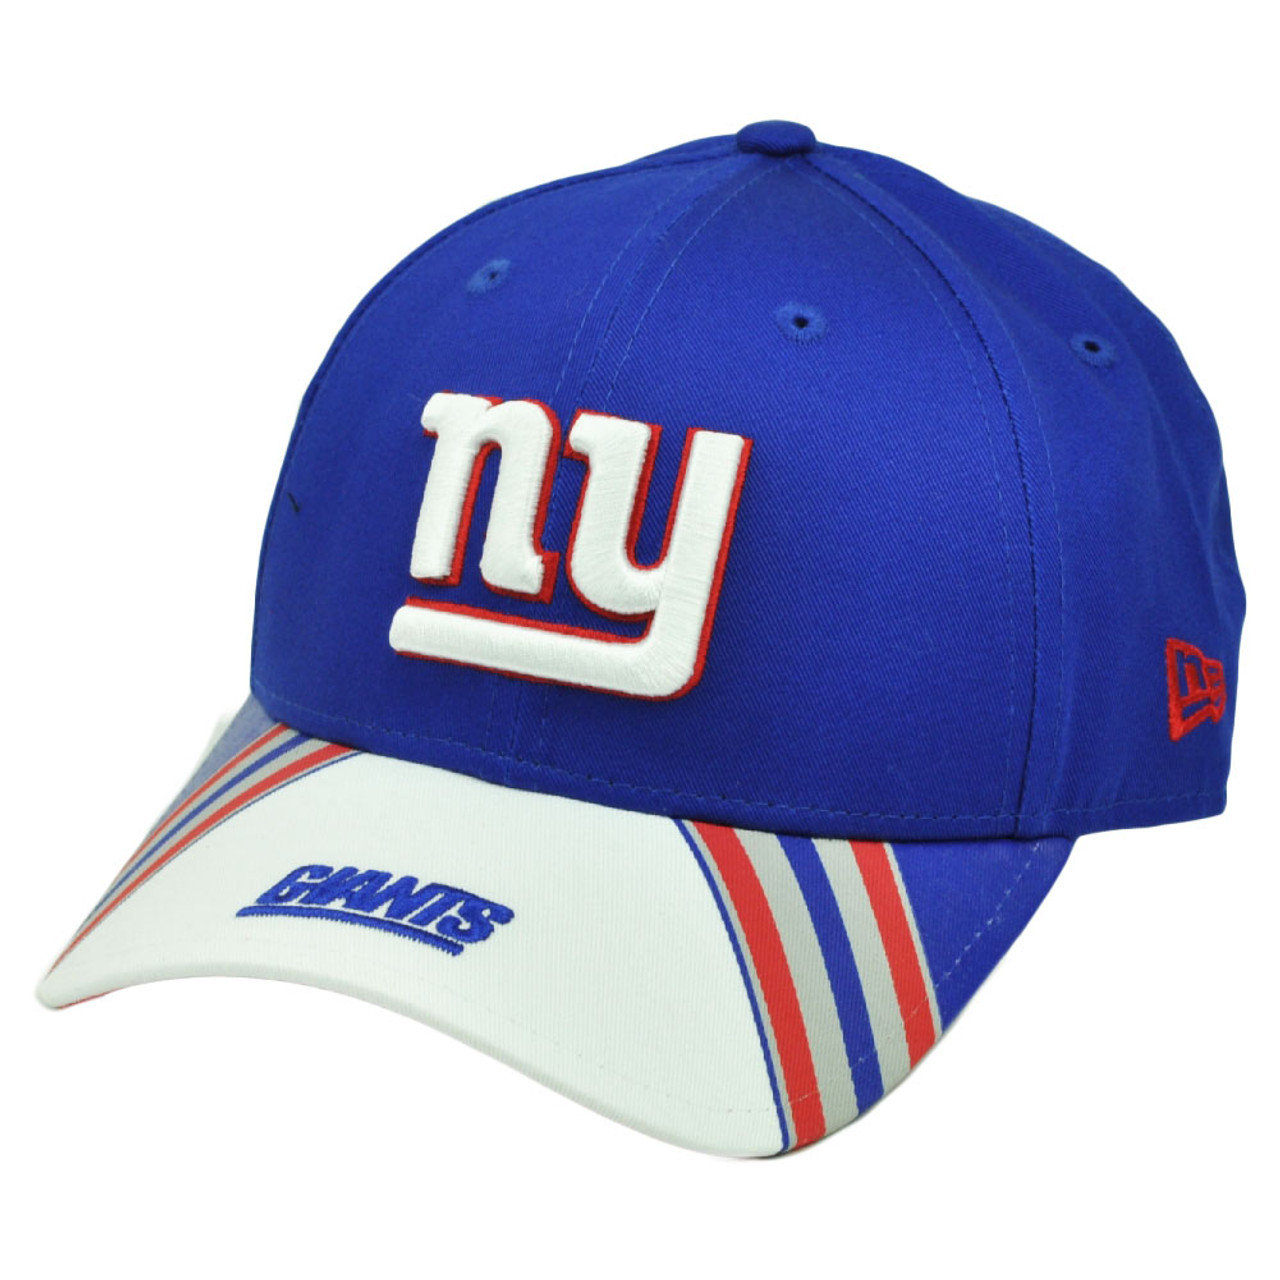 299d7313e6daa NFL New Era 9Forty 940 Jersey Play New York Giants Hat Cap Adjustable - Cap  Store Online.com